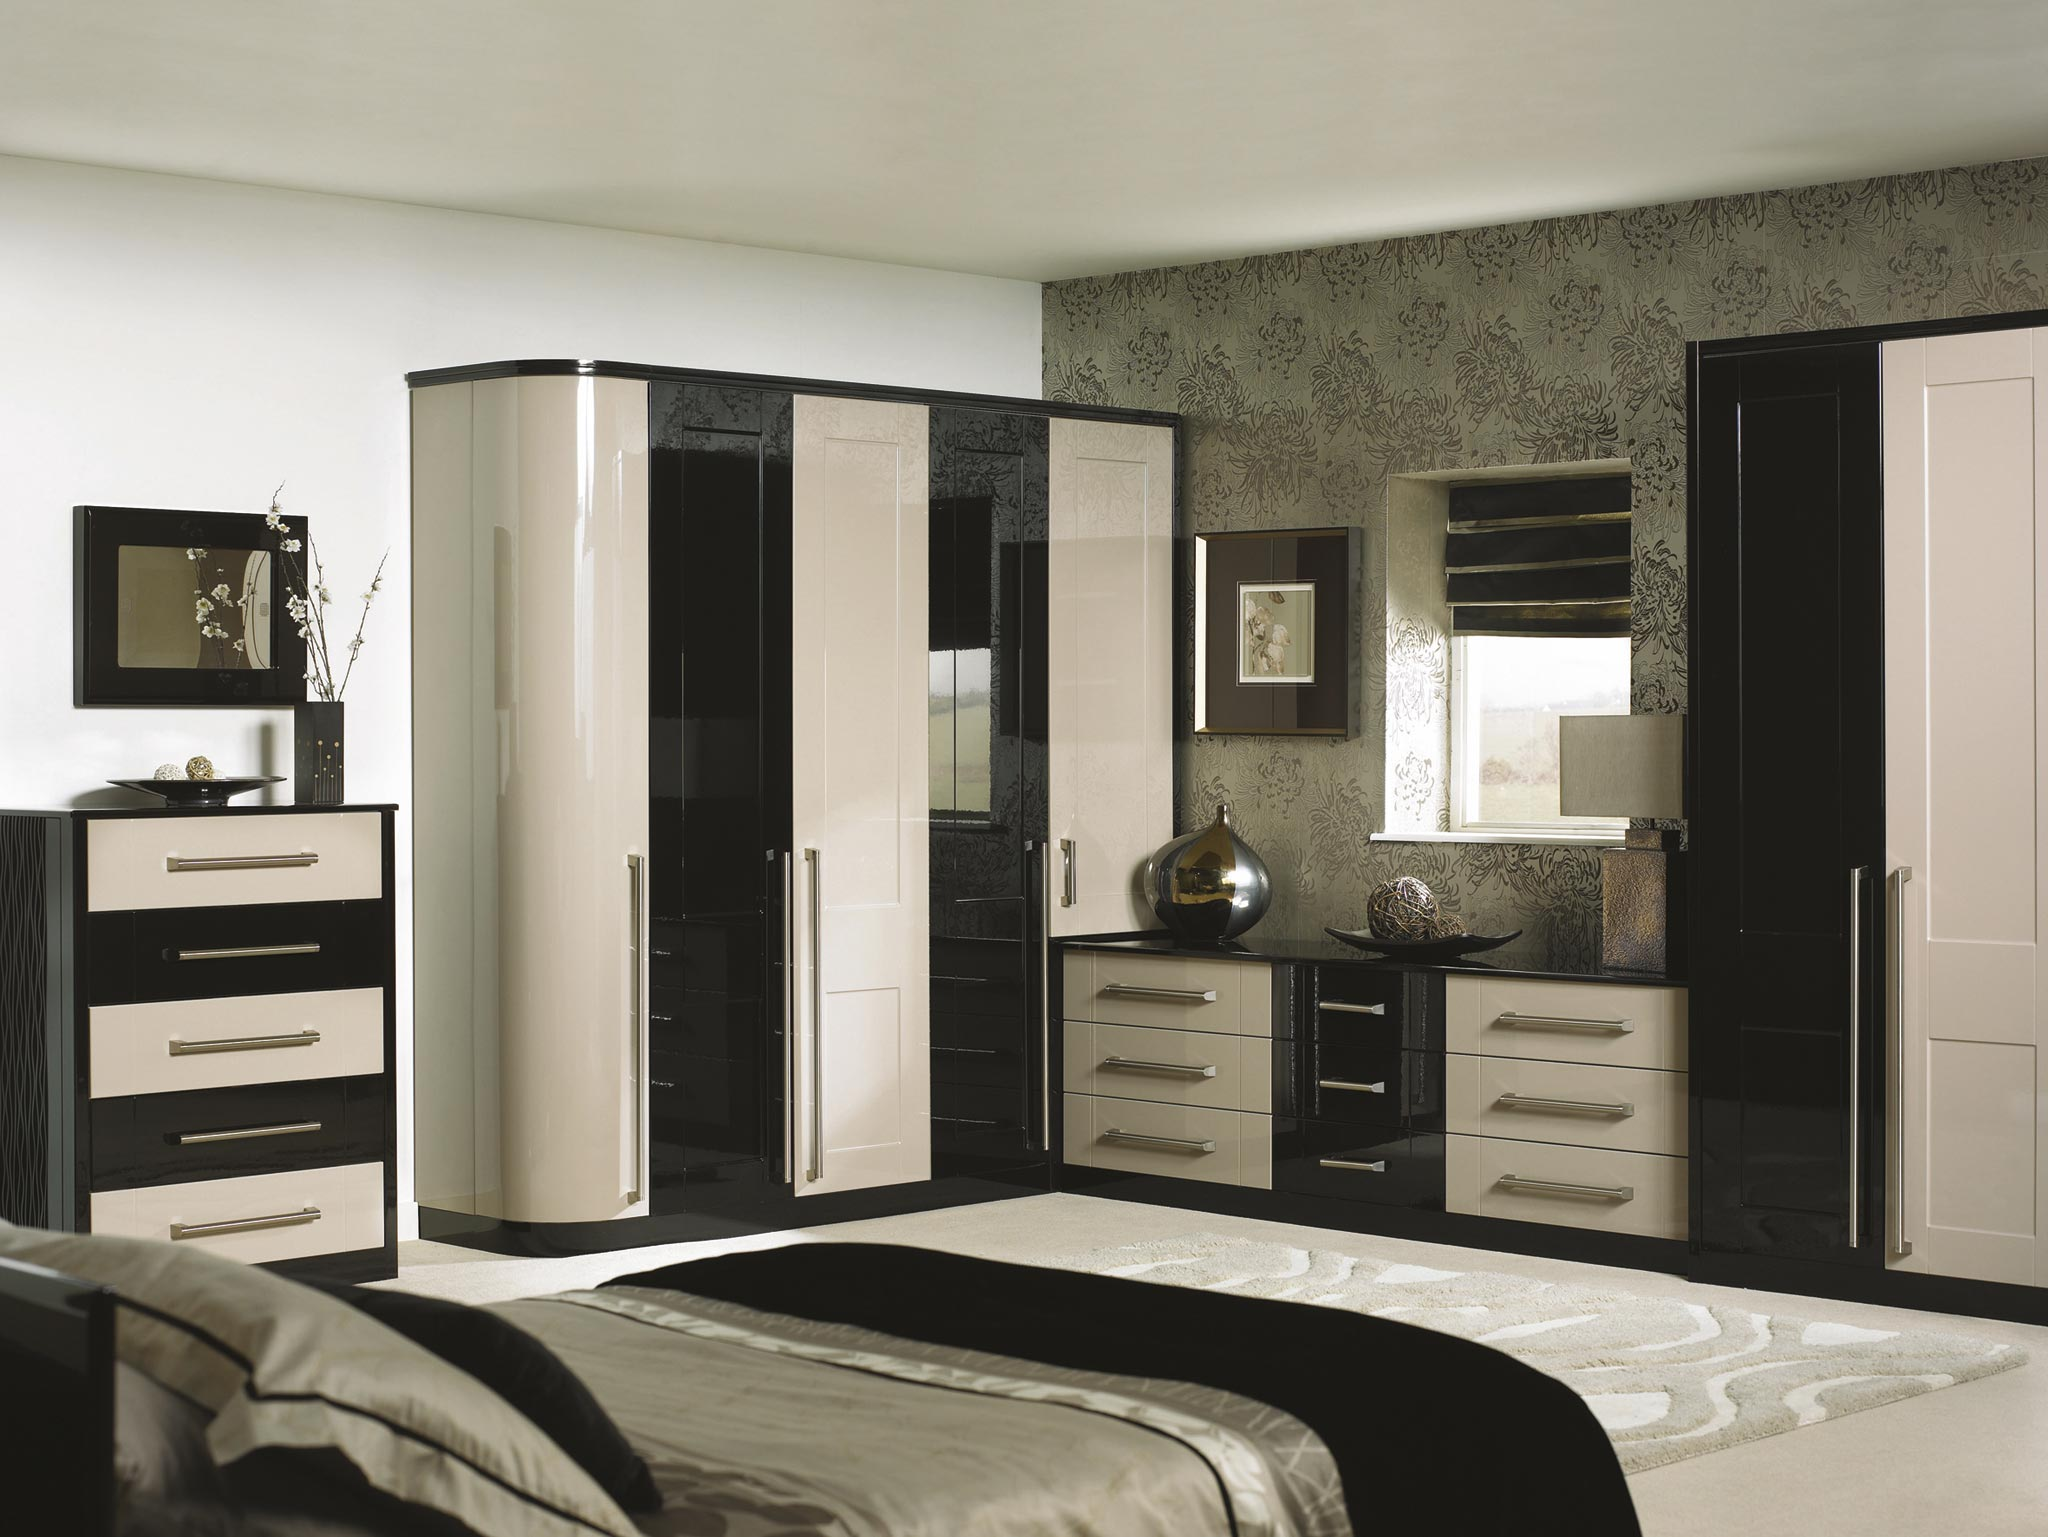 Modern Fitted Bedrooms Bespoke Bedrooms Traditional Modern Supafit Bedrooms Kitchens